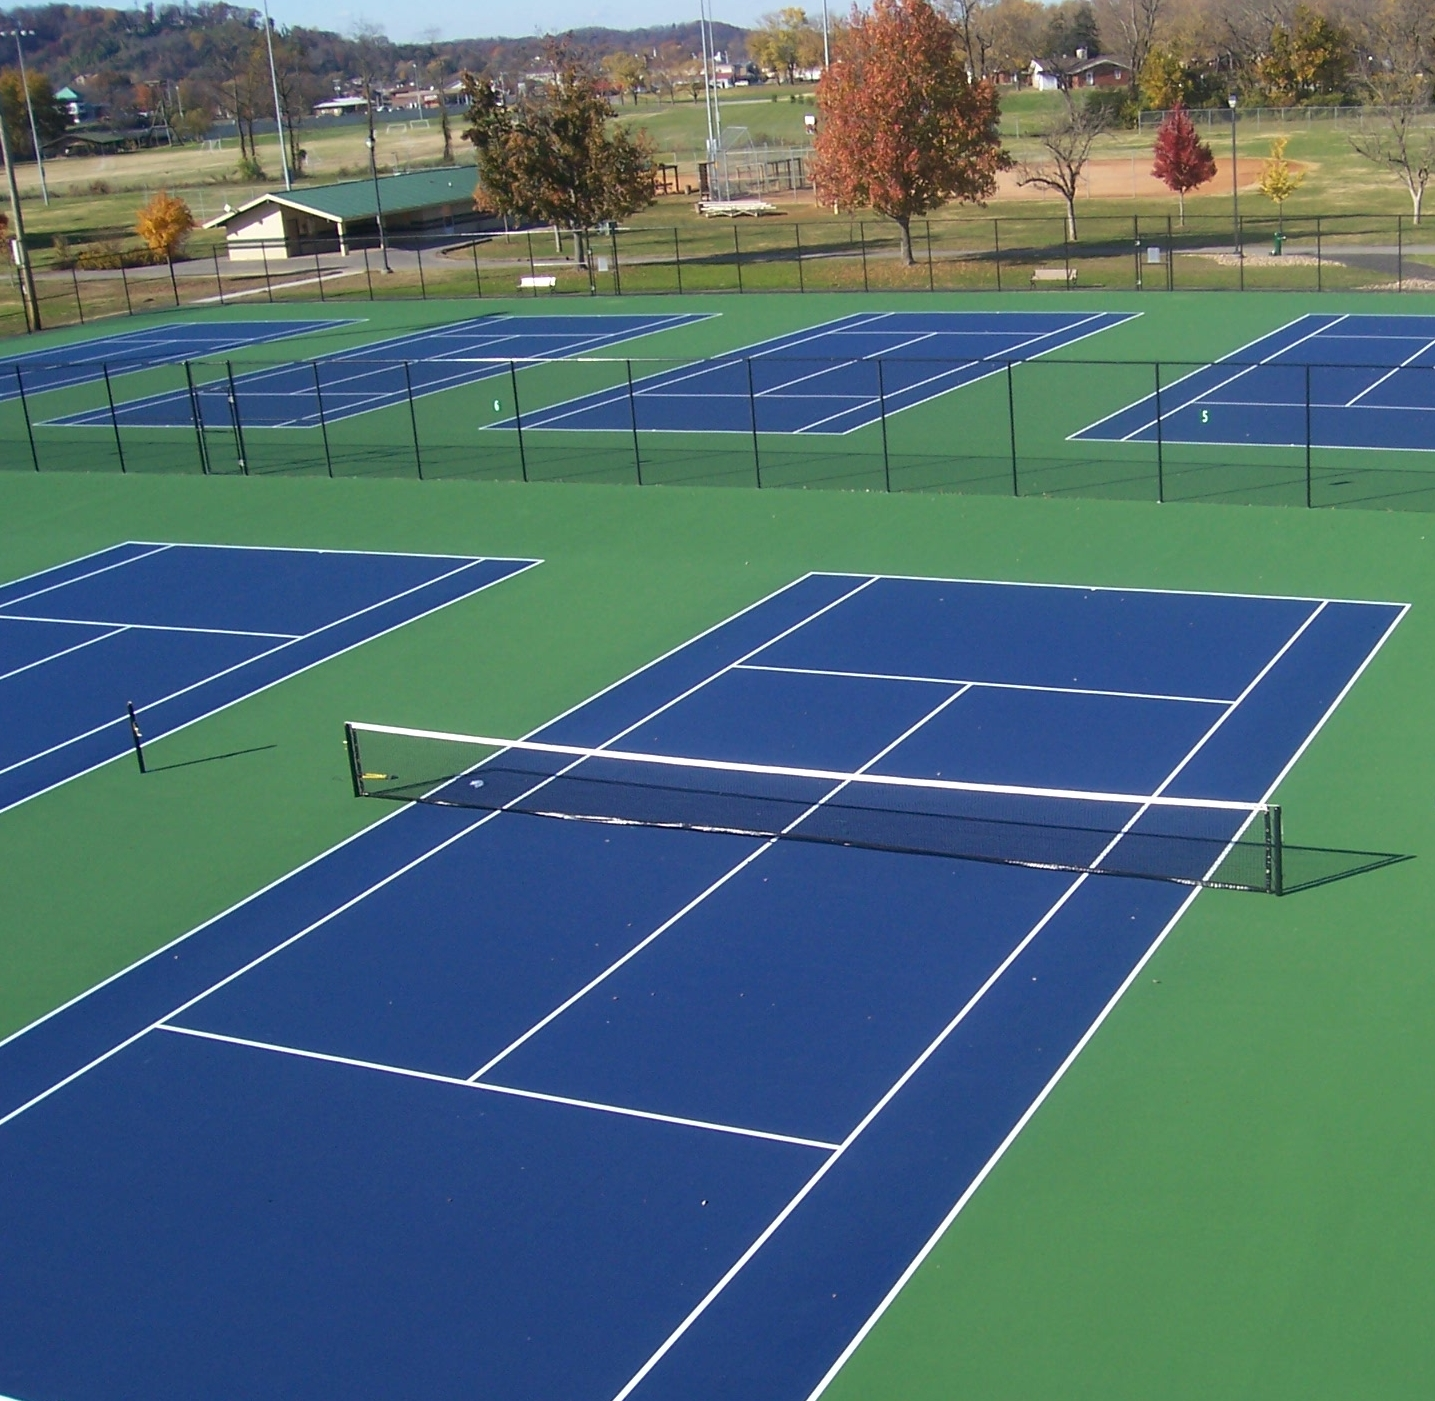 Baseline Sports Construction received an Distinguished Outdoor Tennis Facility Award from the American Sports Builders Association in 2012for work on the tennis facility at the Sevierville City Park in Sevierville, TN. The projected consisted of renovating 8 asphalt tennis courts using the stone slipsheet method, as well as renovating the fencing around the courts. -